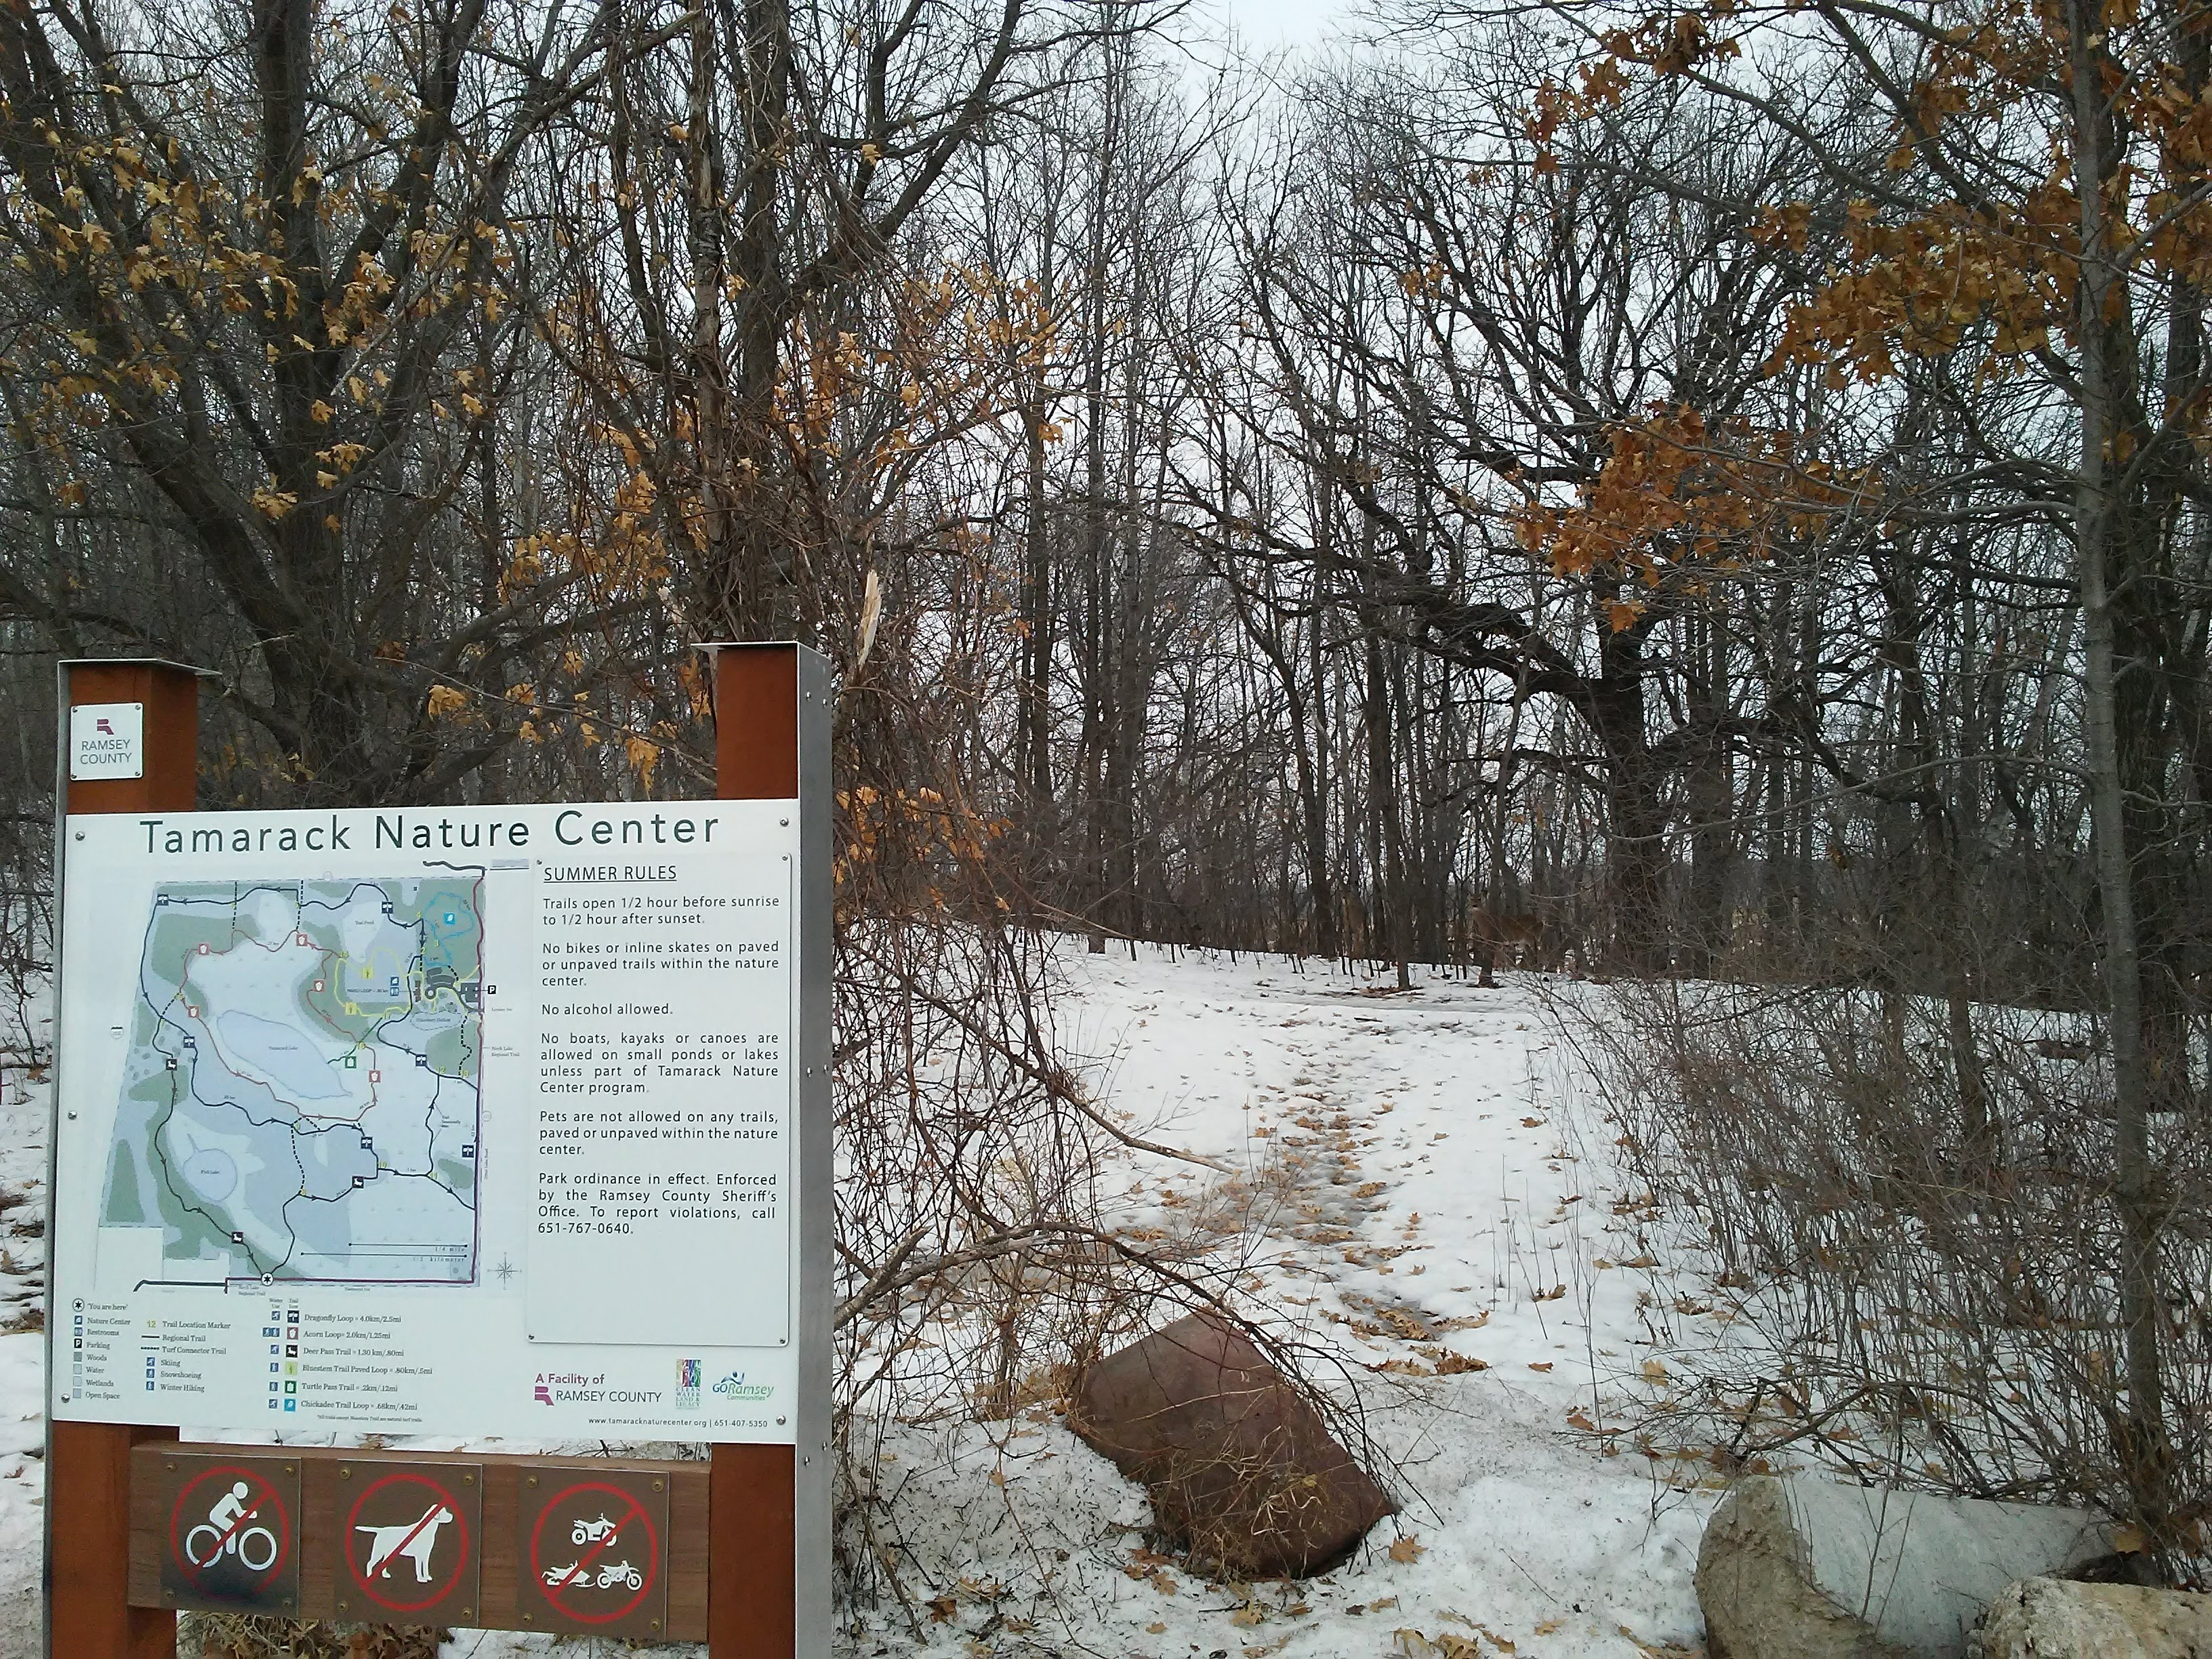 Park sign and snow and deer and trees